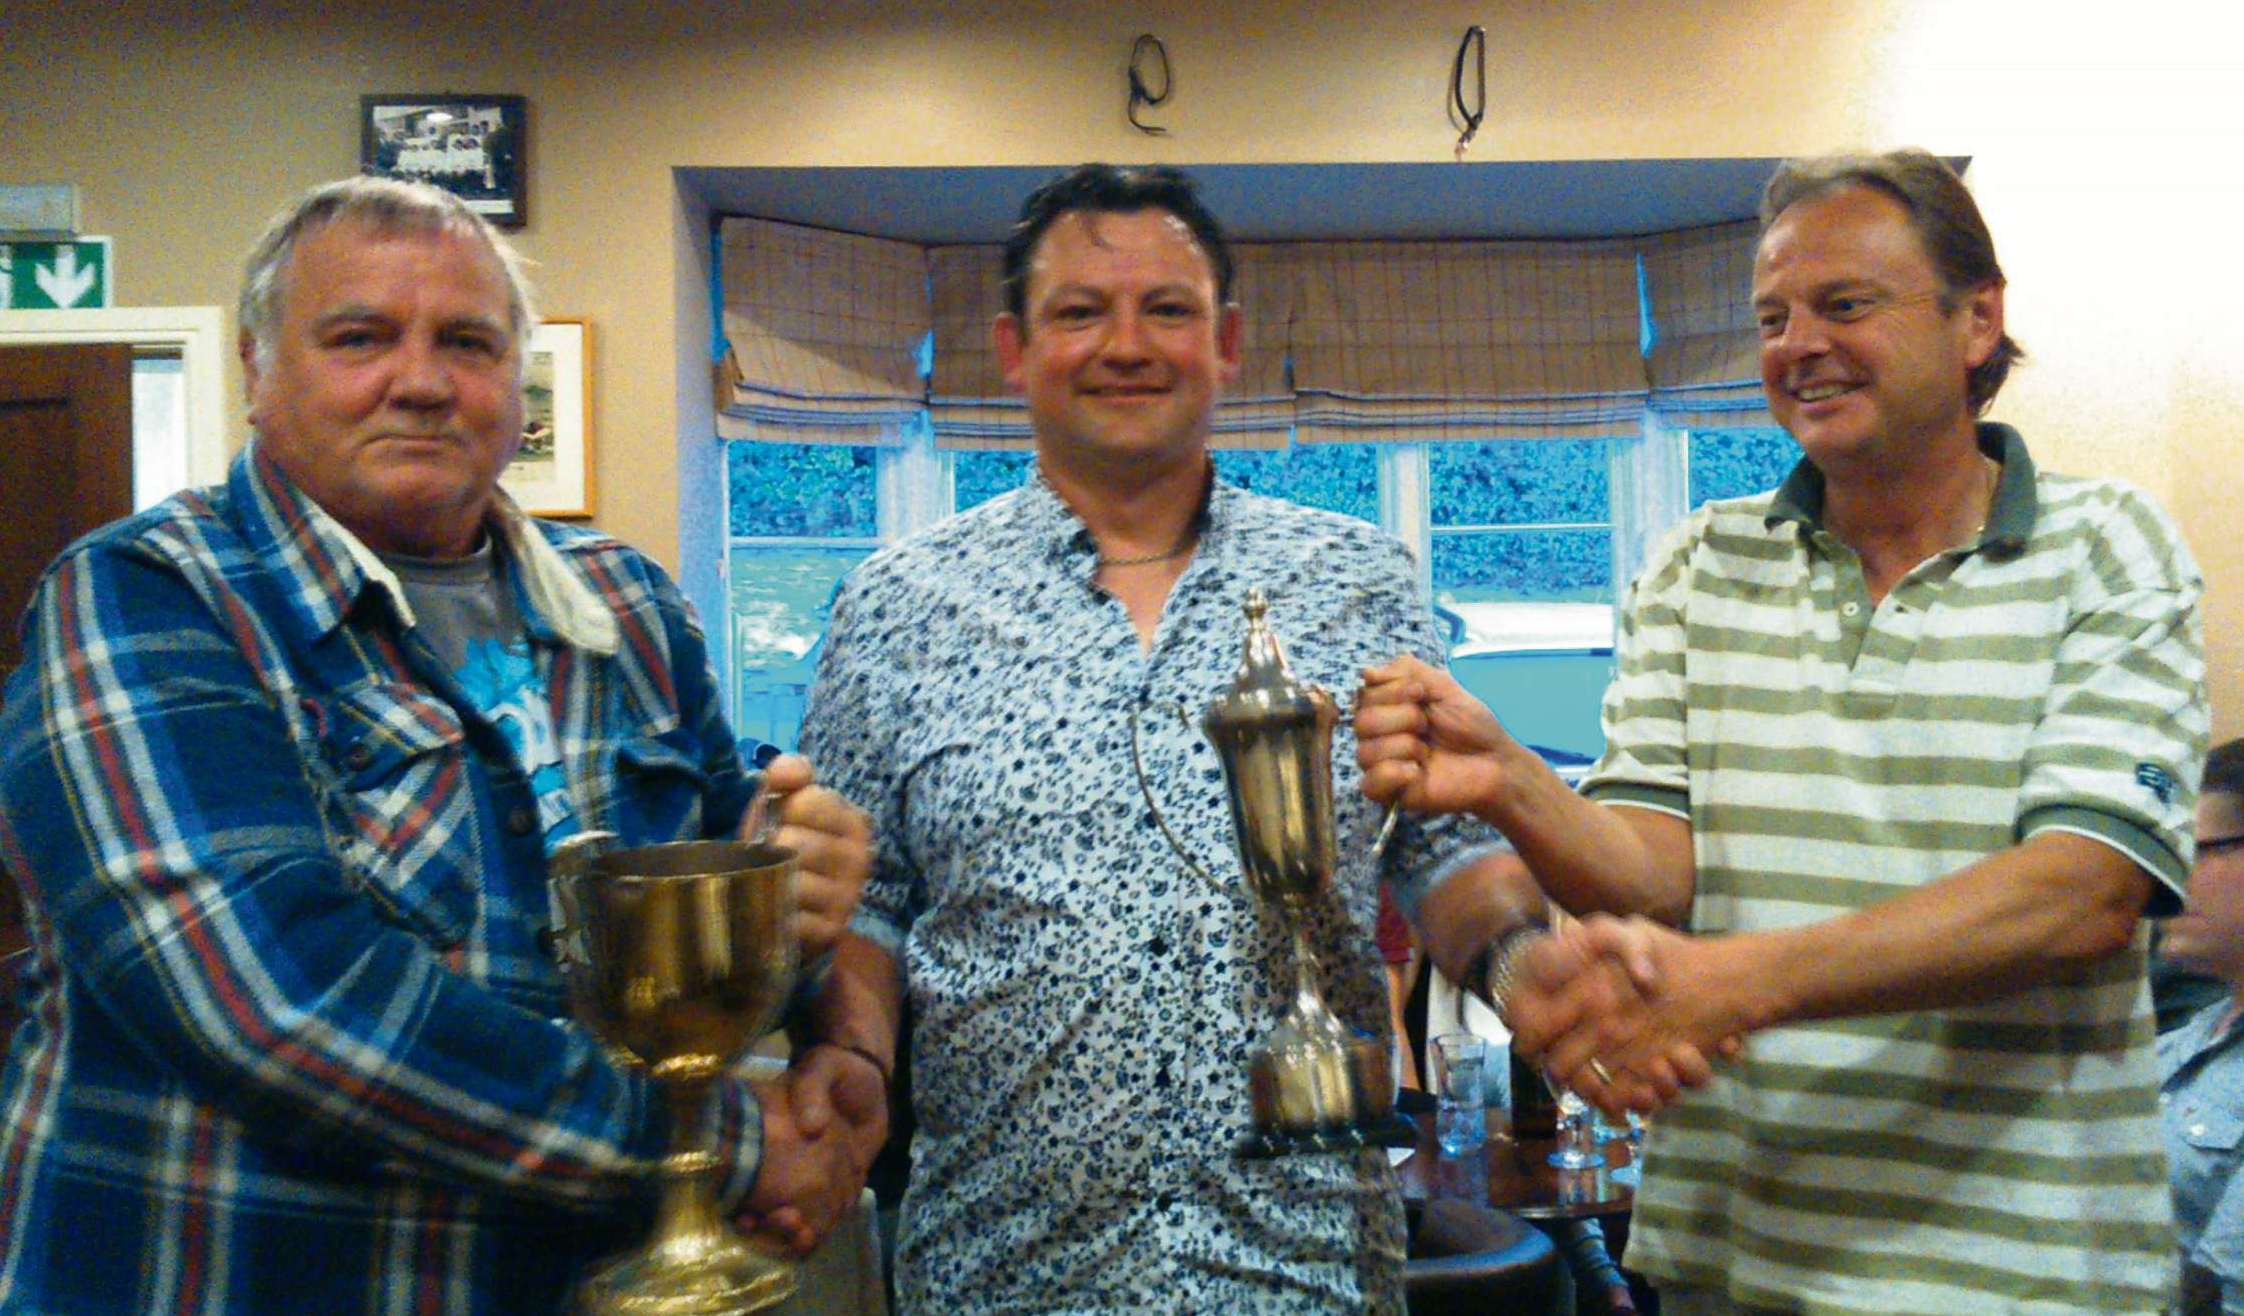 Chris Shurmer (centrre) with chairman Bob Morris (left) and secretary Alan Pearson.